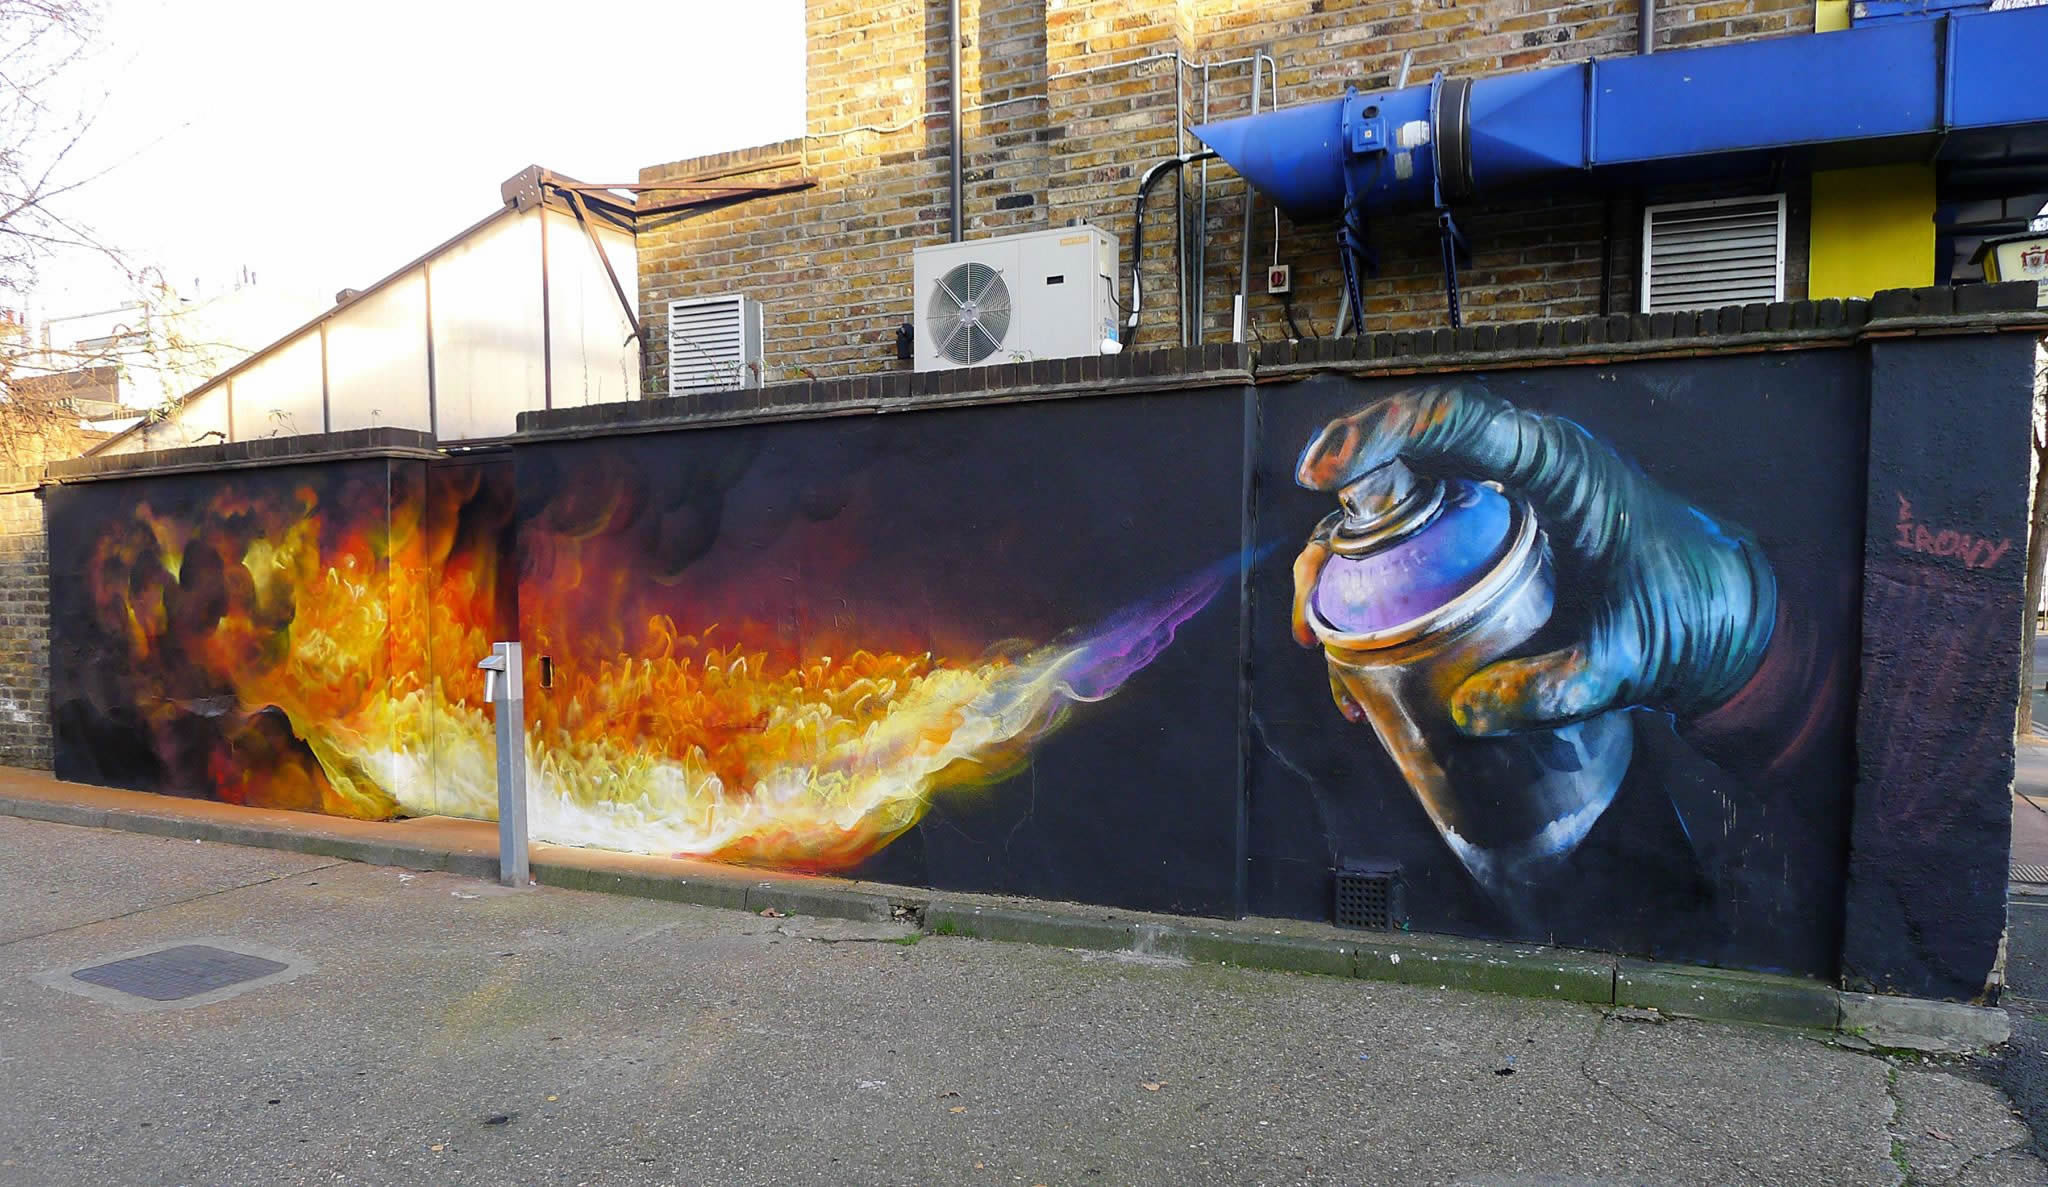 burn, spray can spraying fire, whoam irony